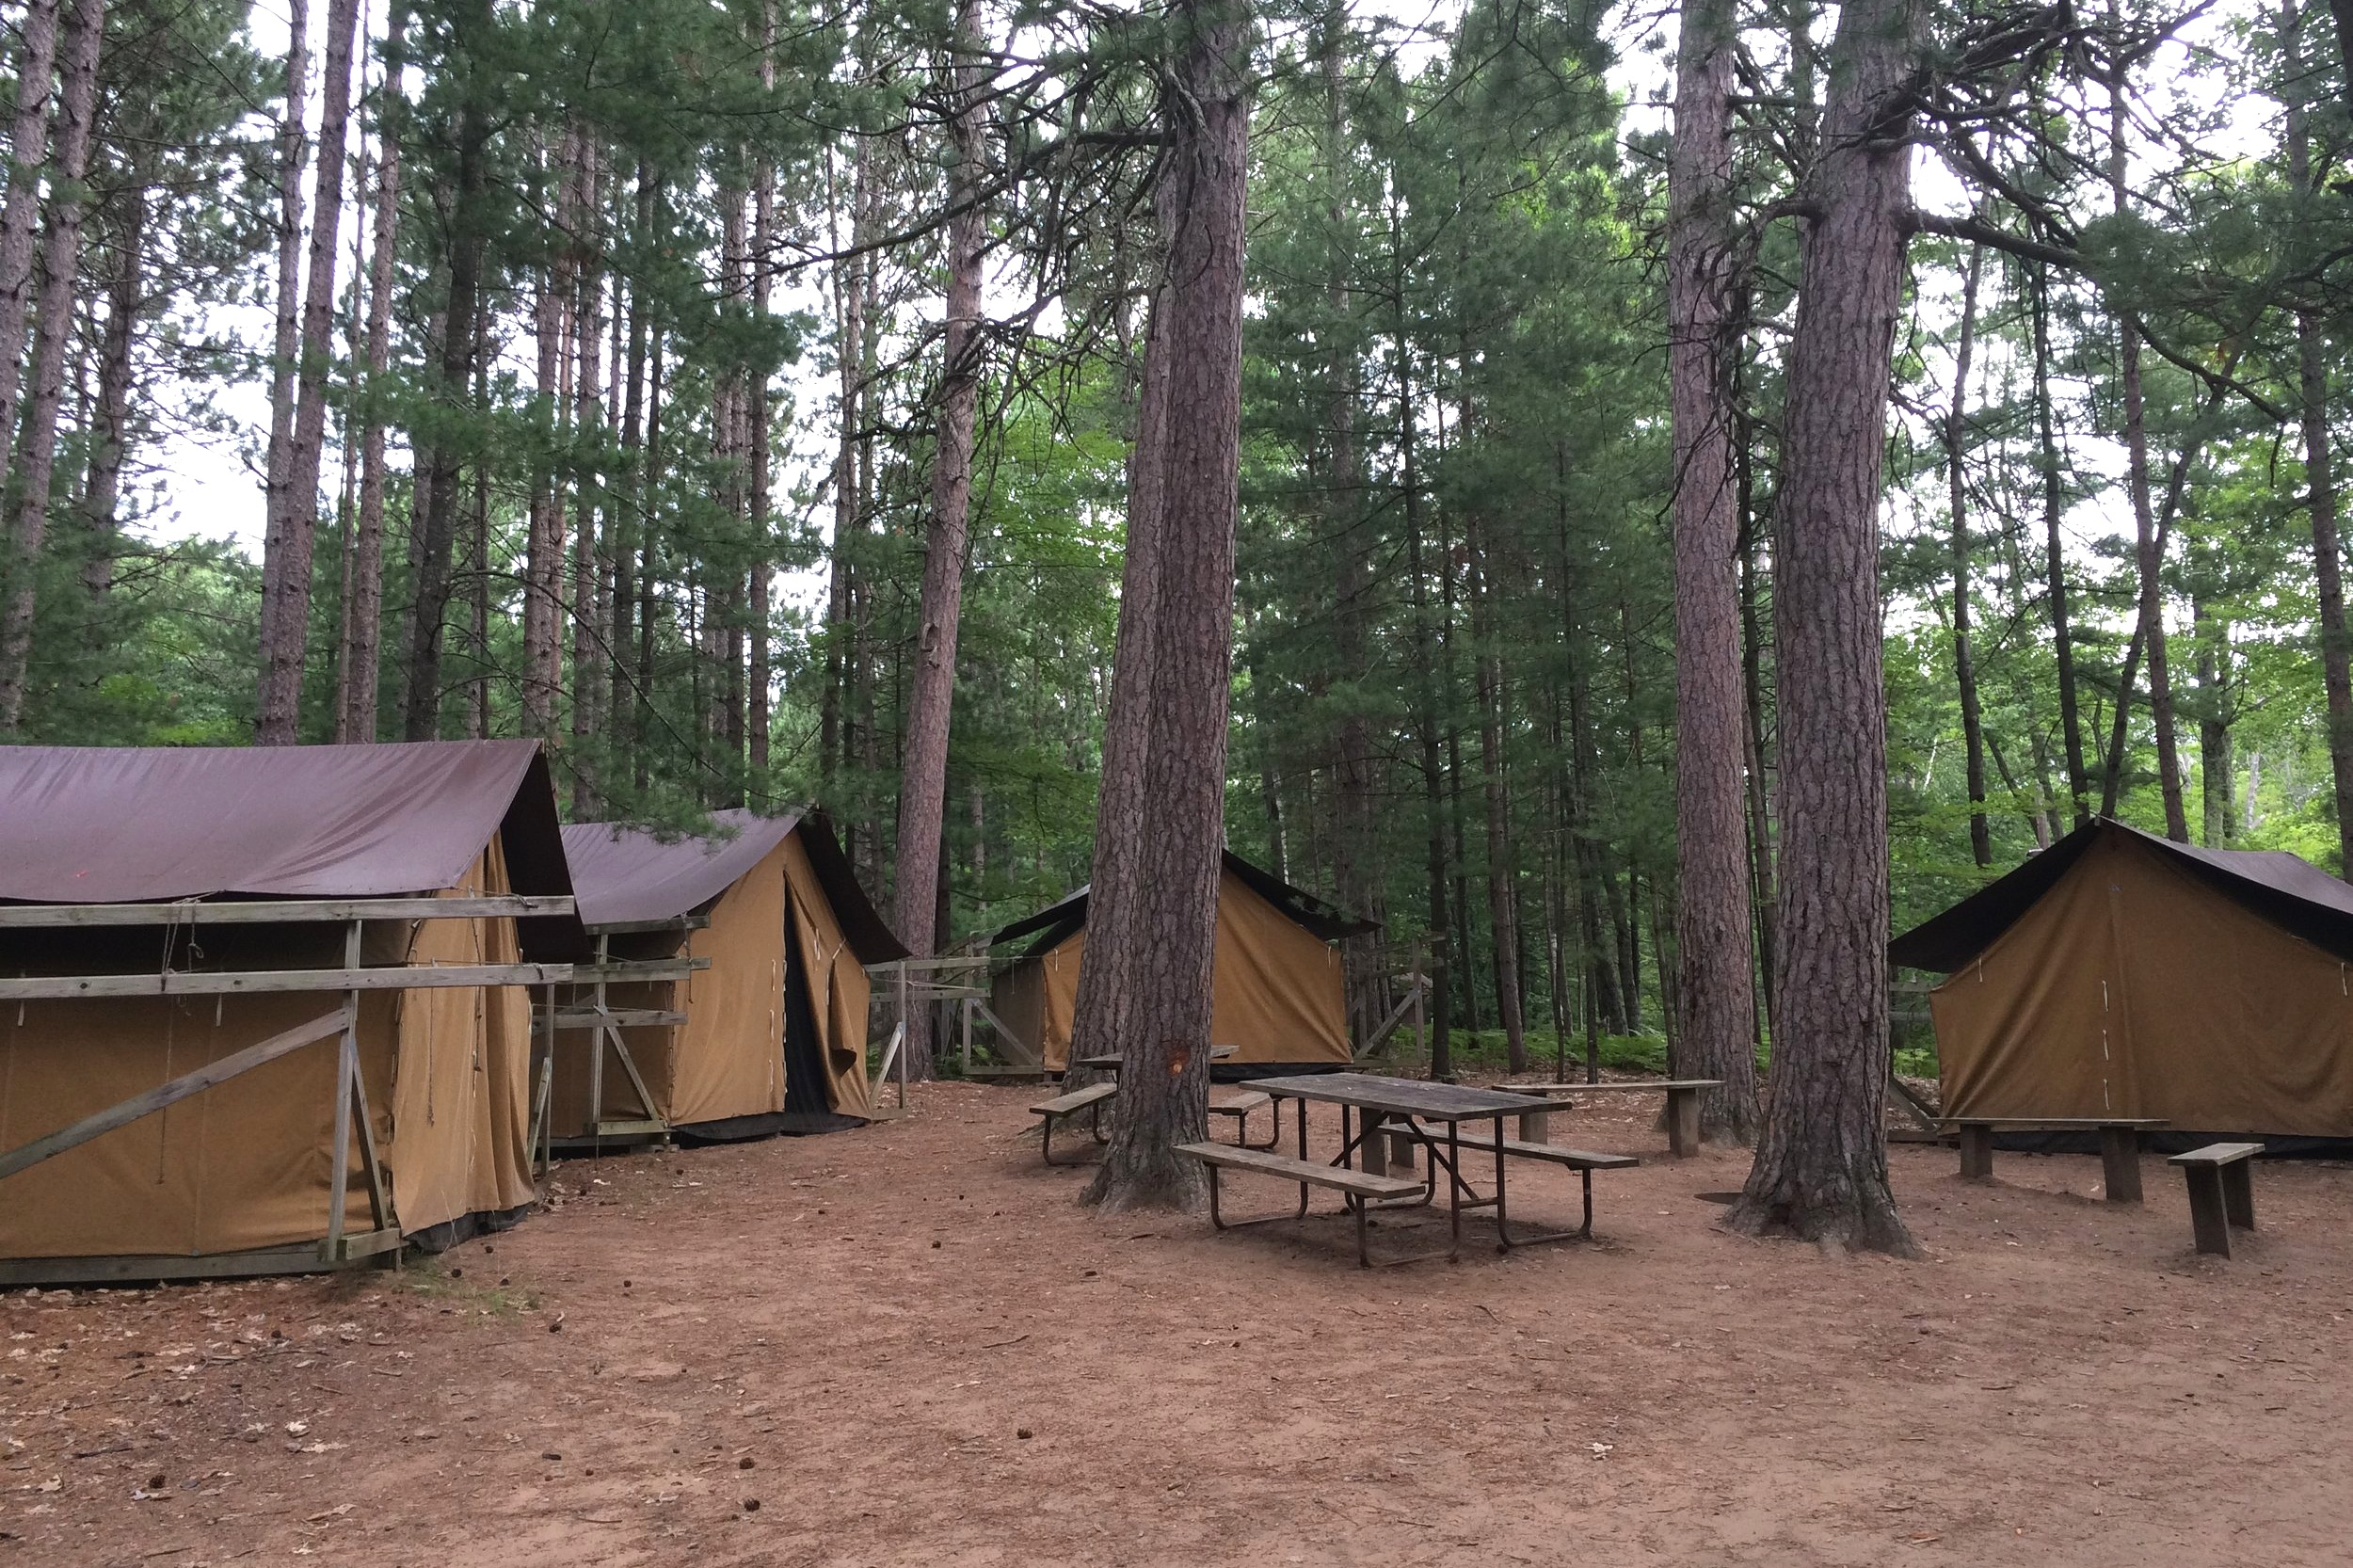 Tent Villages - - Consists of four army-style platform tents, each containing two bunk-beds